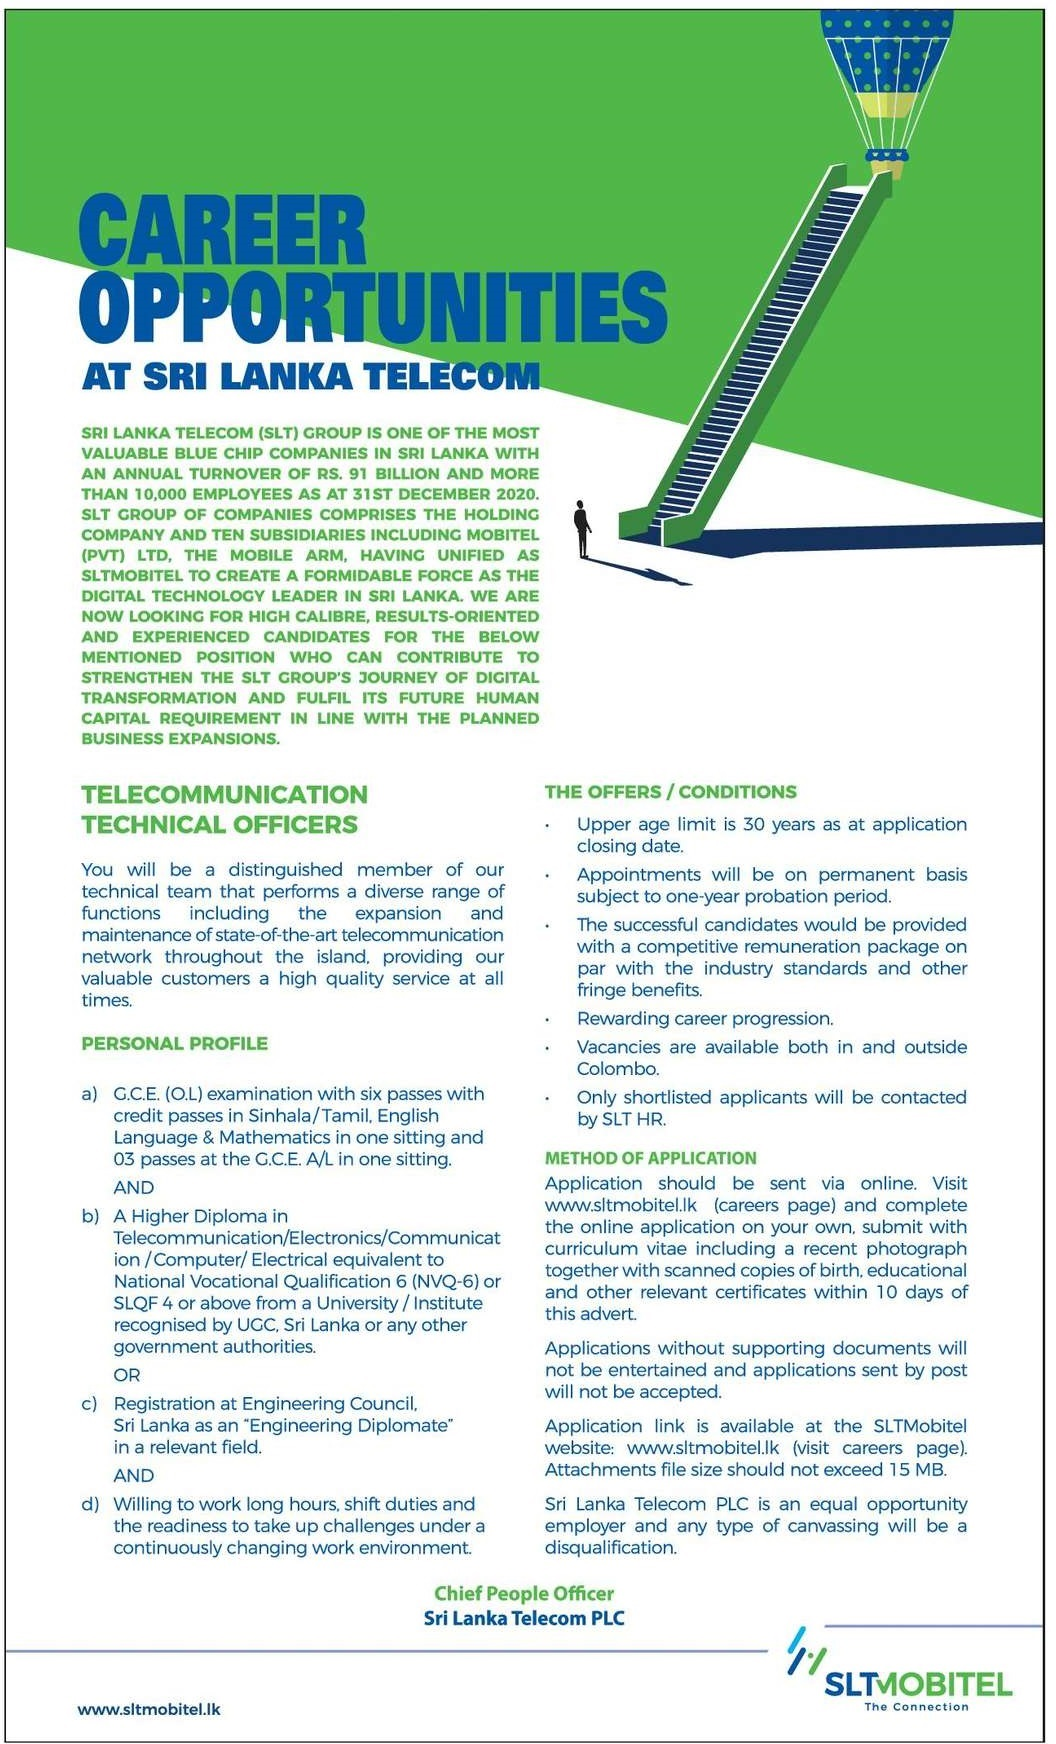 Telecommunication Technical Officers